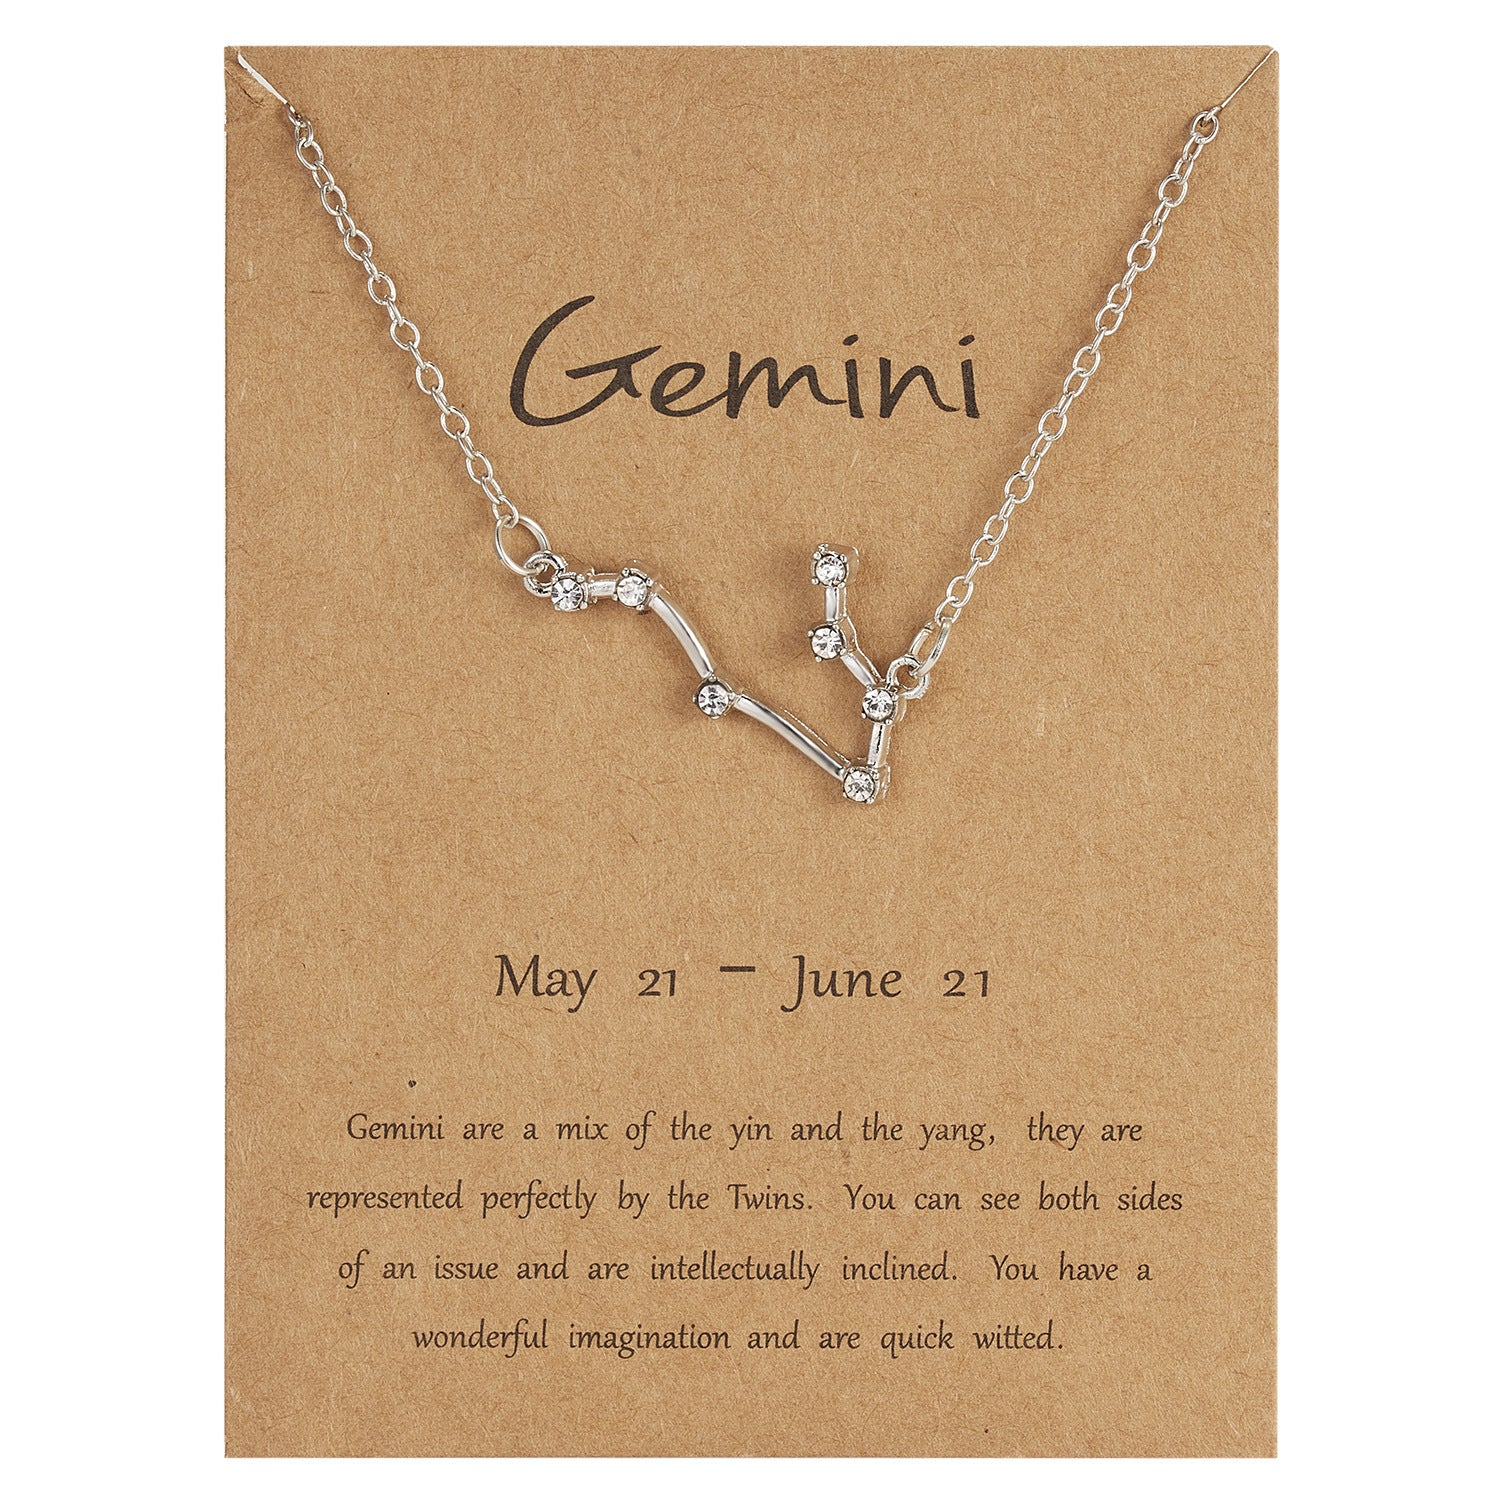 Zodiac Jewellery UK - Gemini Necklace